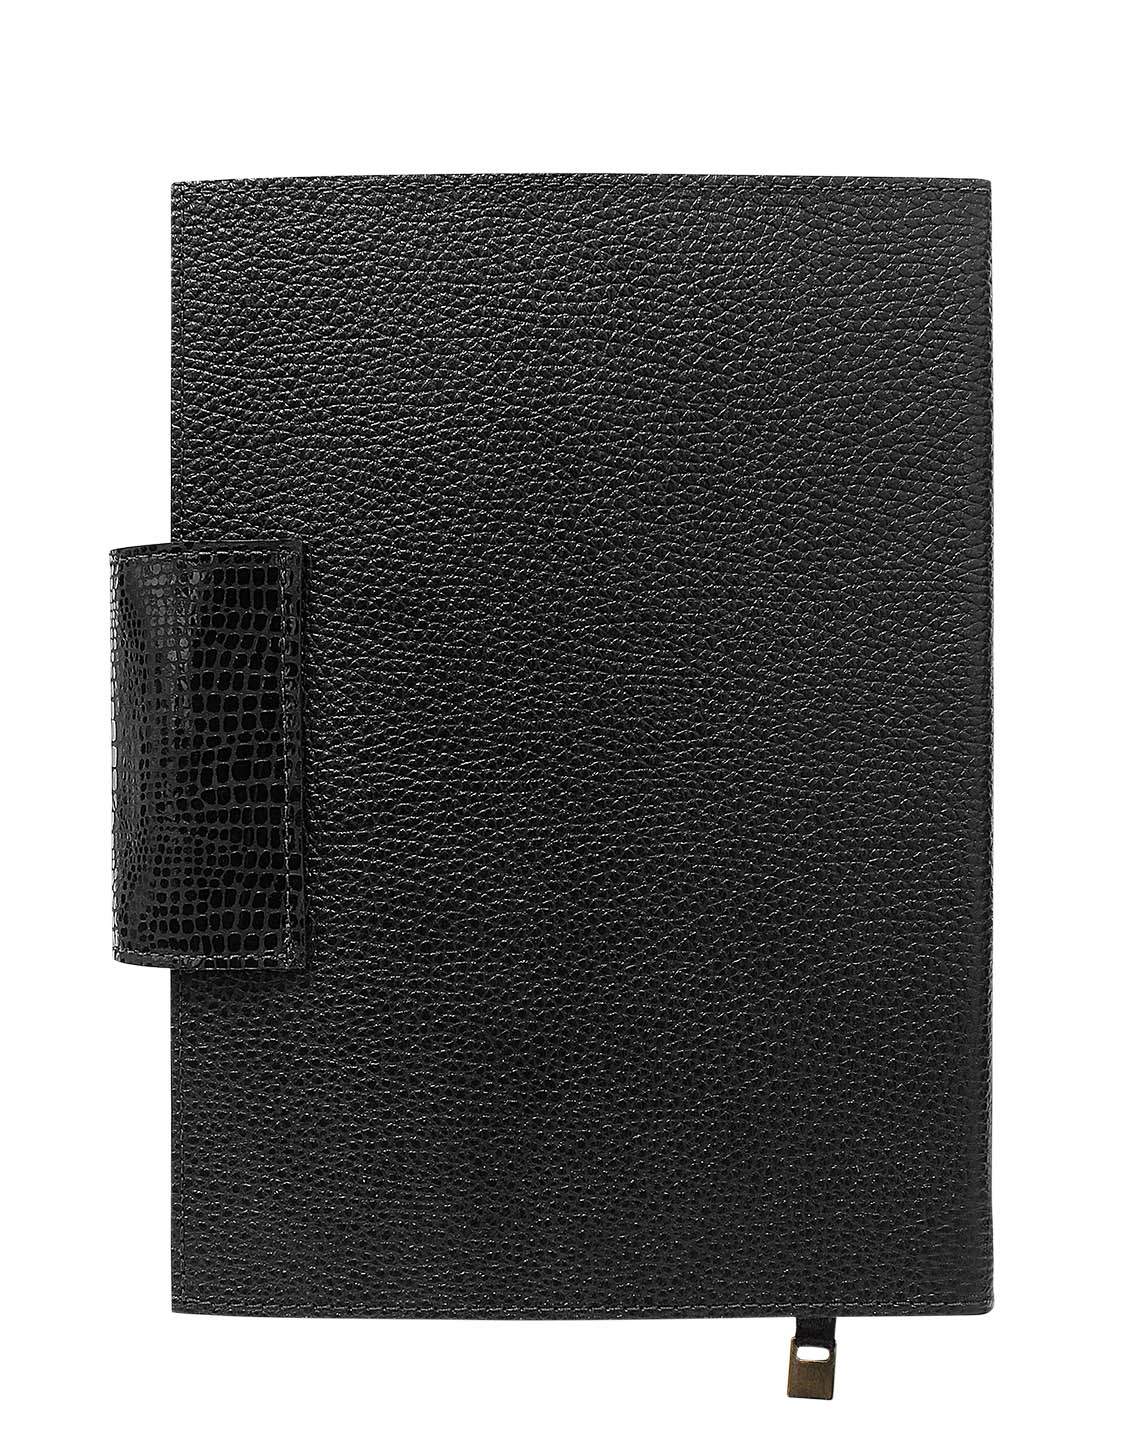 Agenda AG-0124 Color Negro